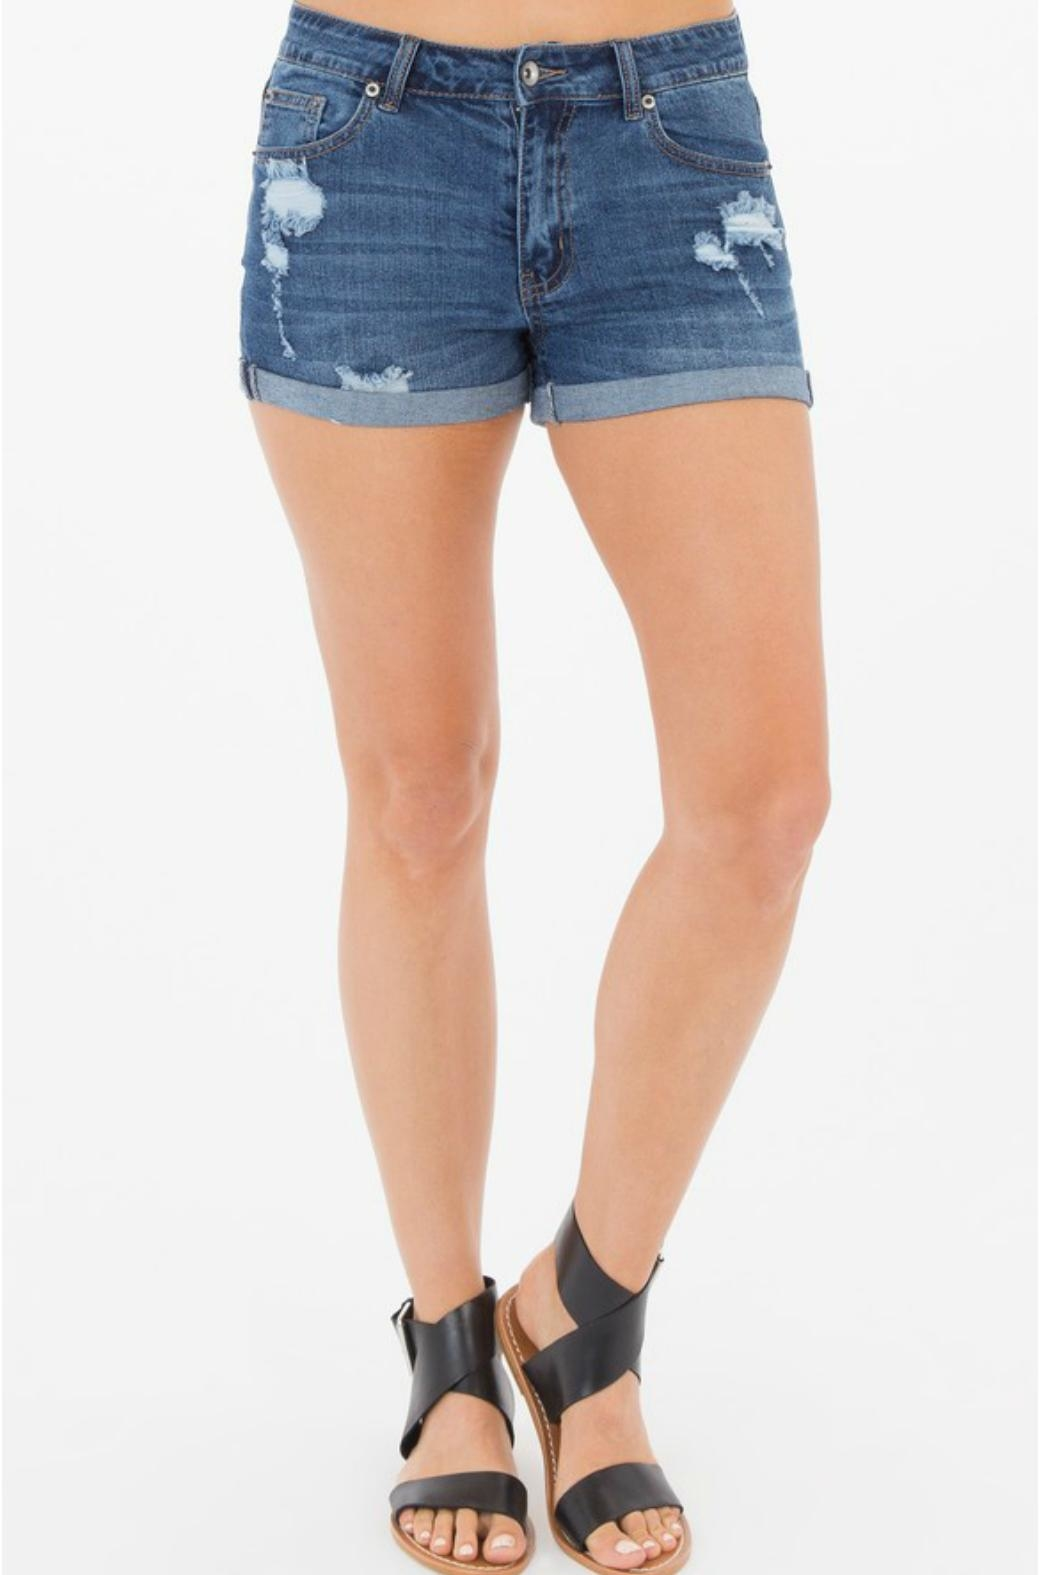 Others Follow  Cora Distressed Shorts - Main Image